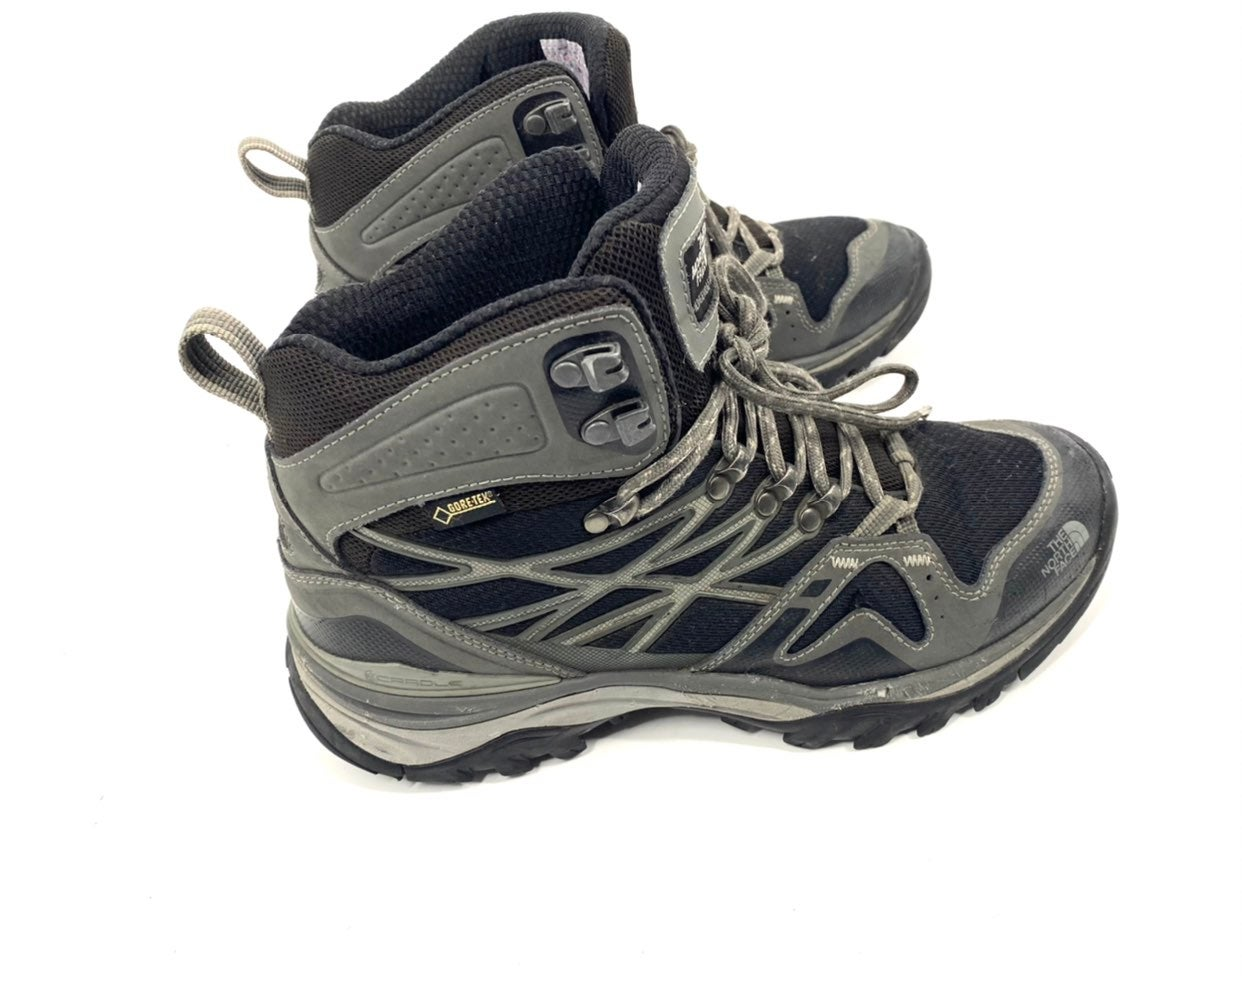 North Face Fastpack hiking boots sz 7.5